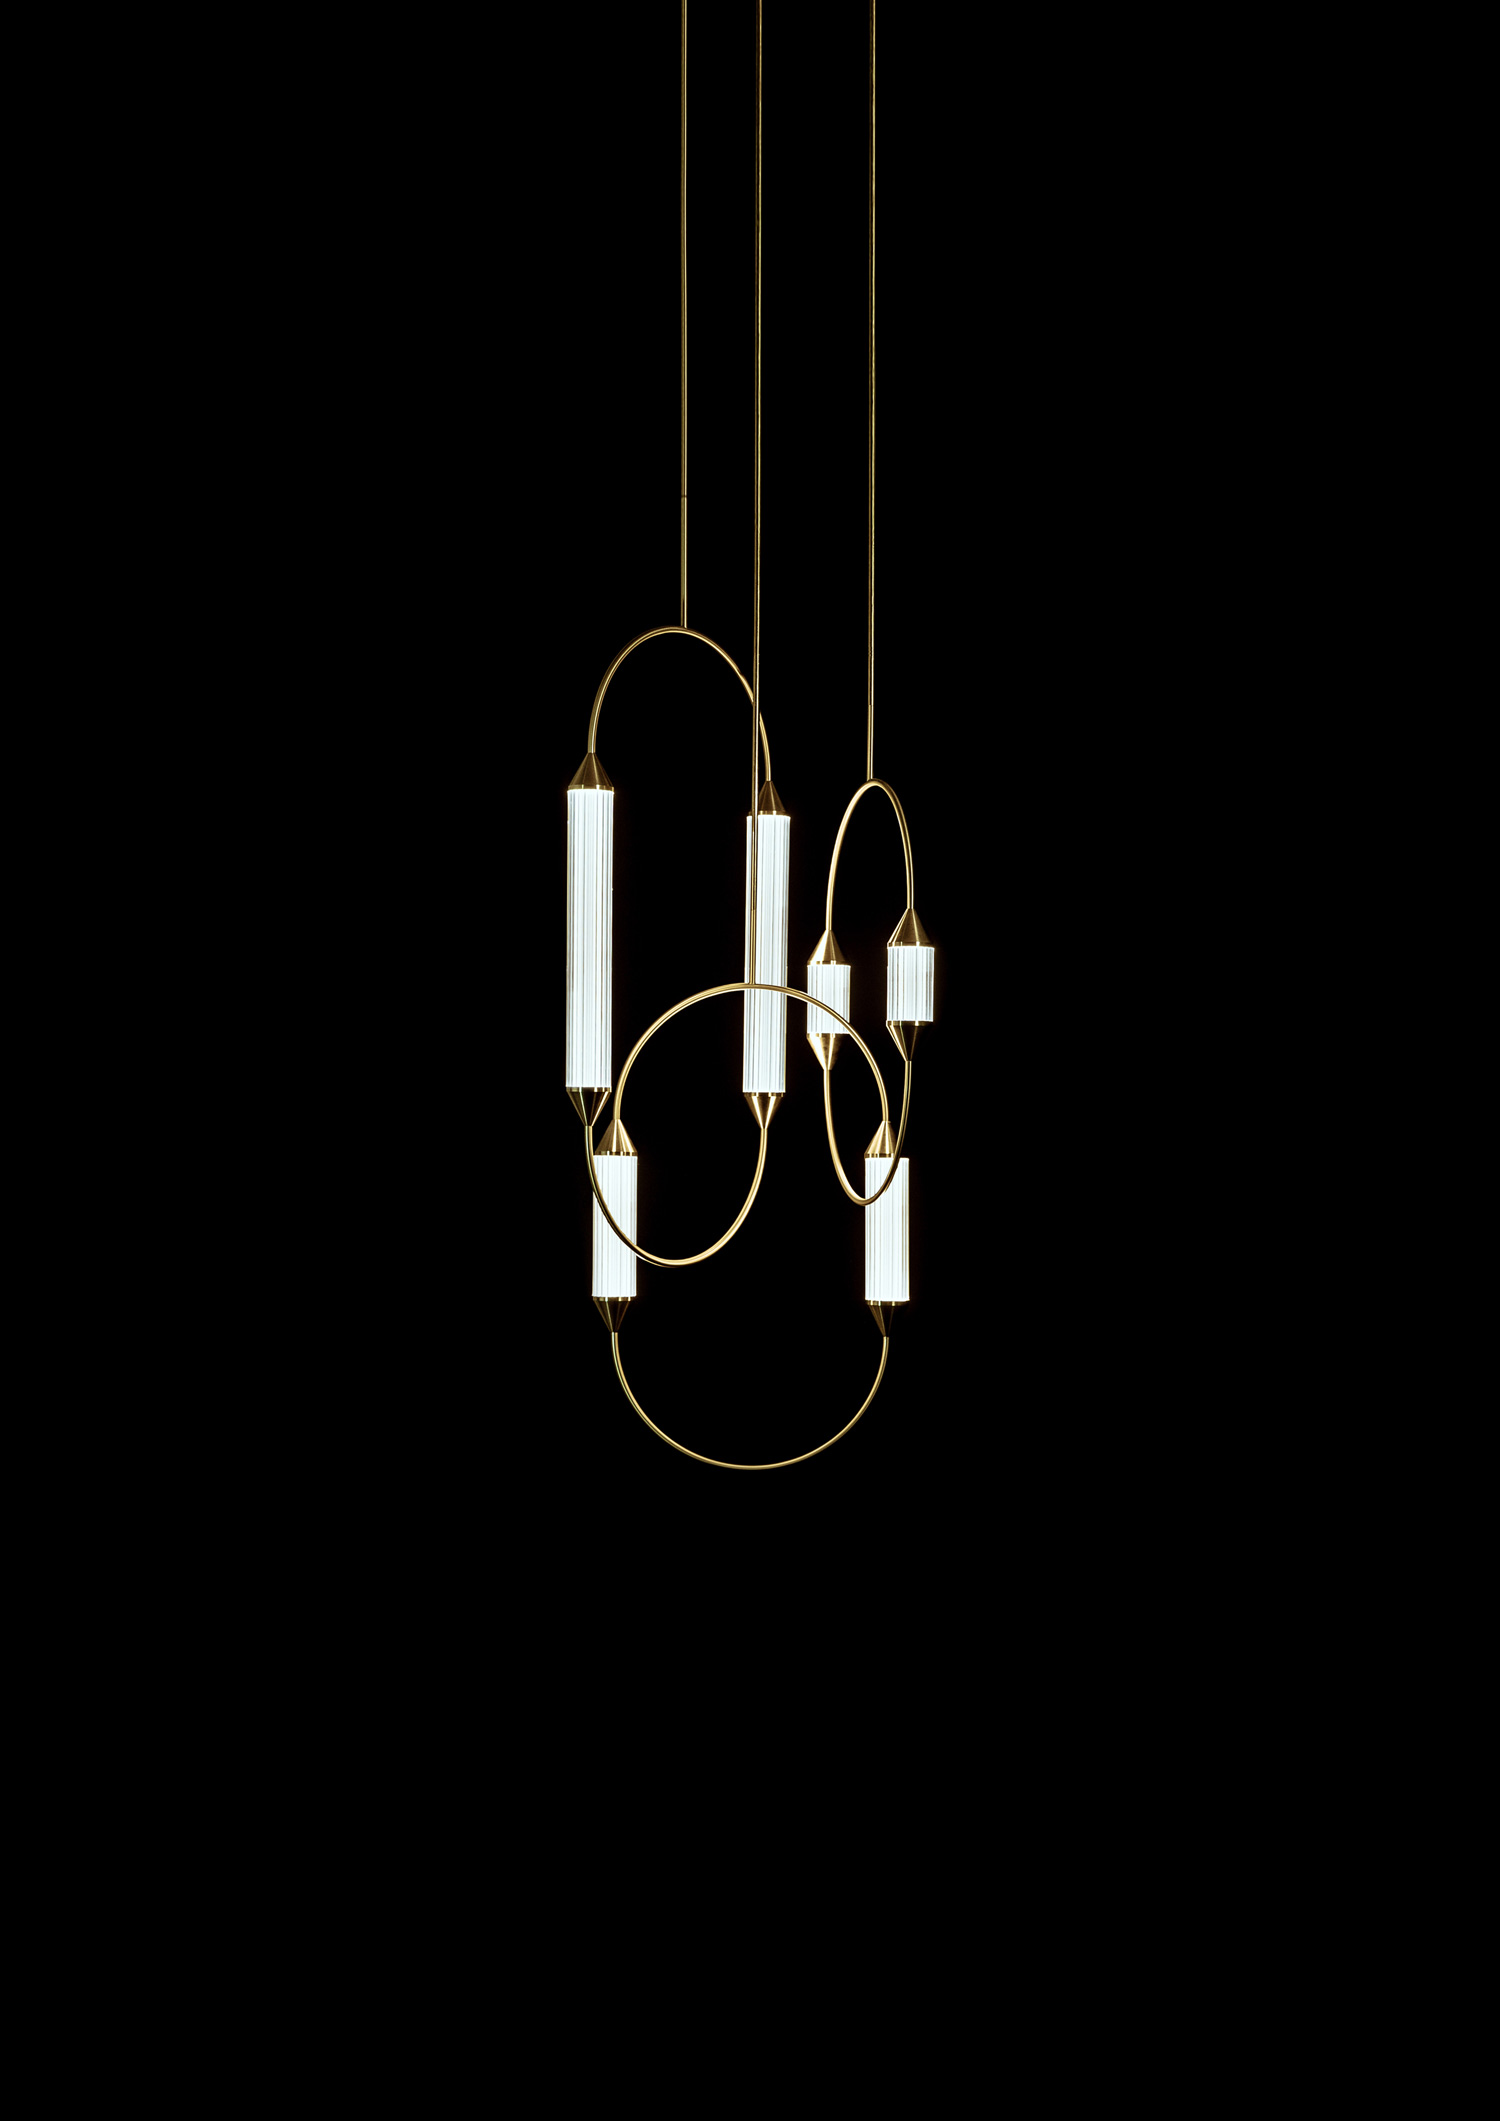 Giopato_Coombes_Cirque_Chandelier_4_Medium_2_Ph_JonBronxl.jpg